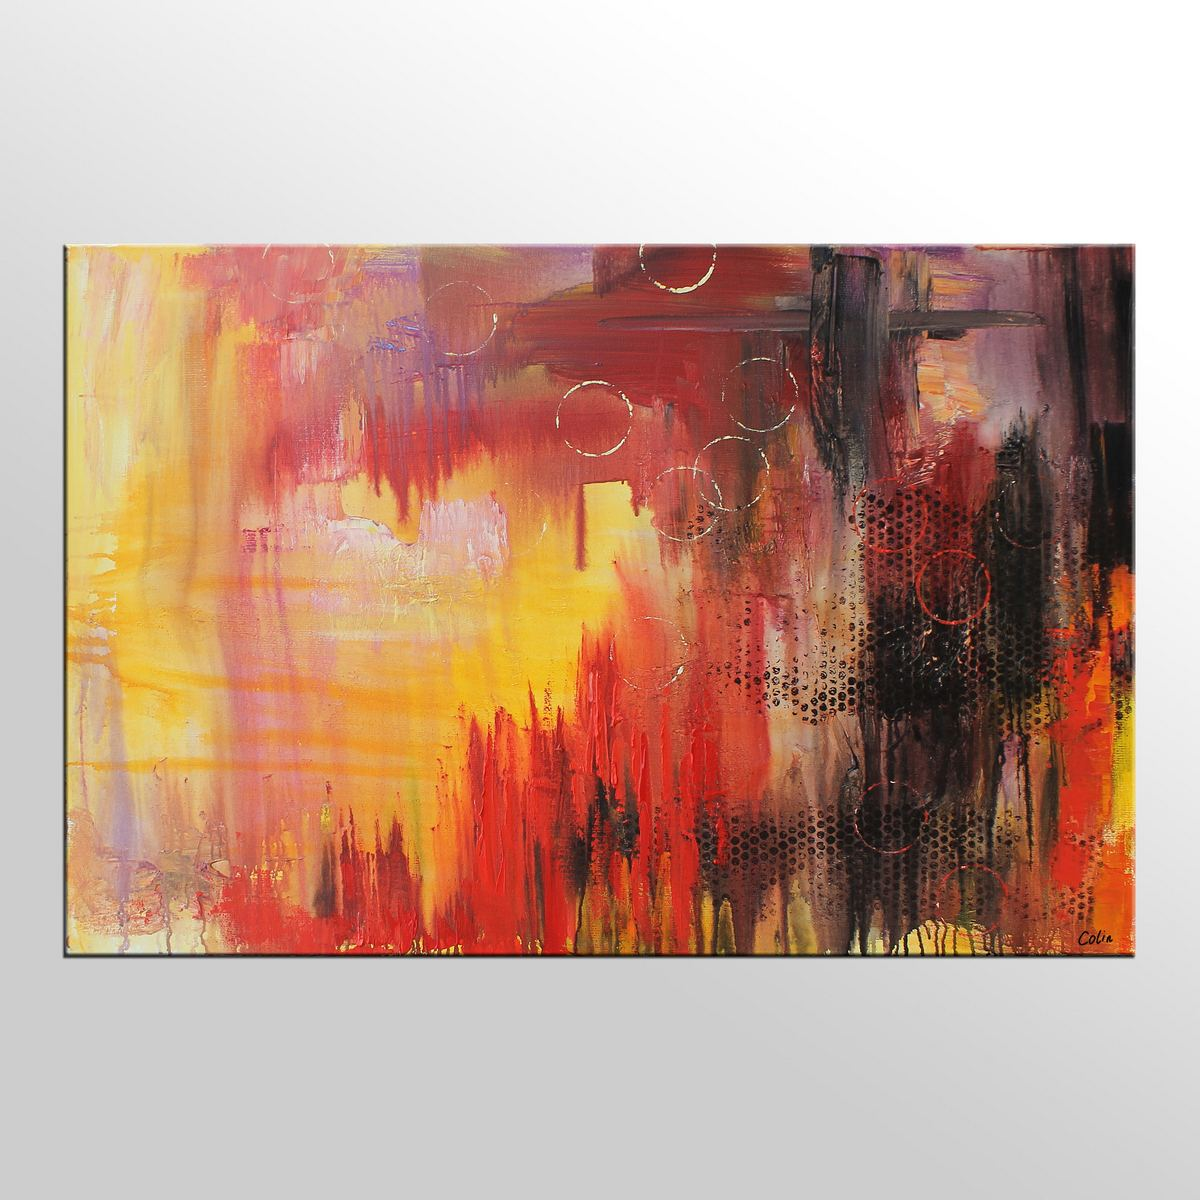 Abstract Painting, Large Art, Original Painting, Acrylic Art, Canvas Art, Wall Art, Original Artwork, Canvas Painting, Abstract Art, 564 - artworkcanvas